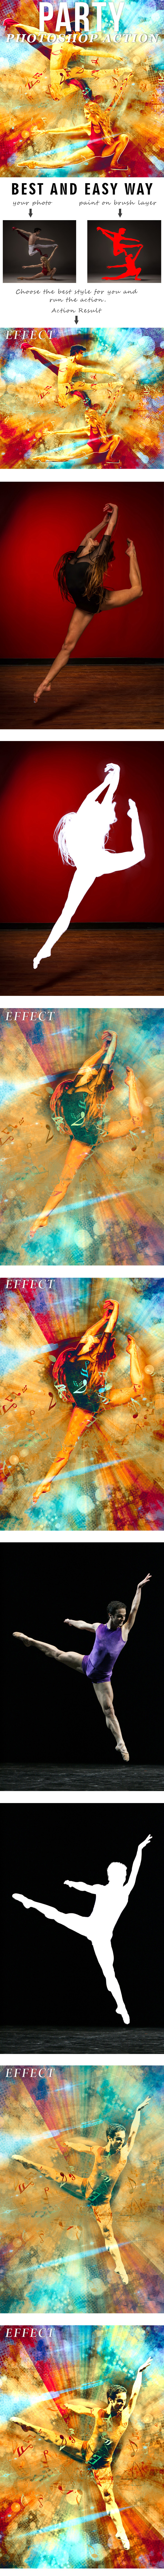 Party Photoshop Action - Photo Effects Actions